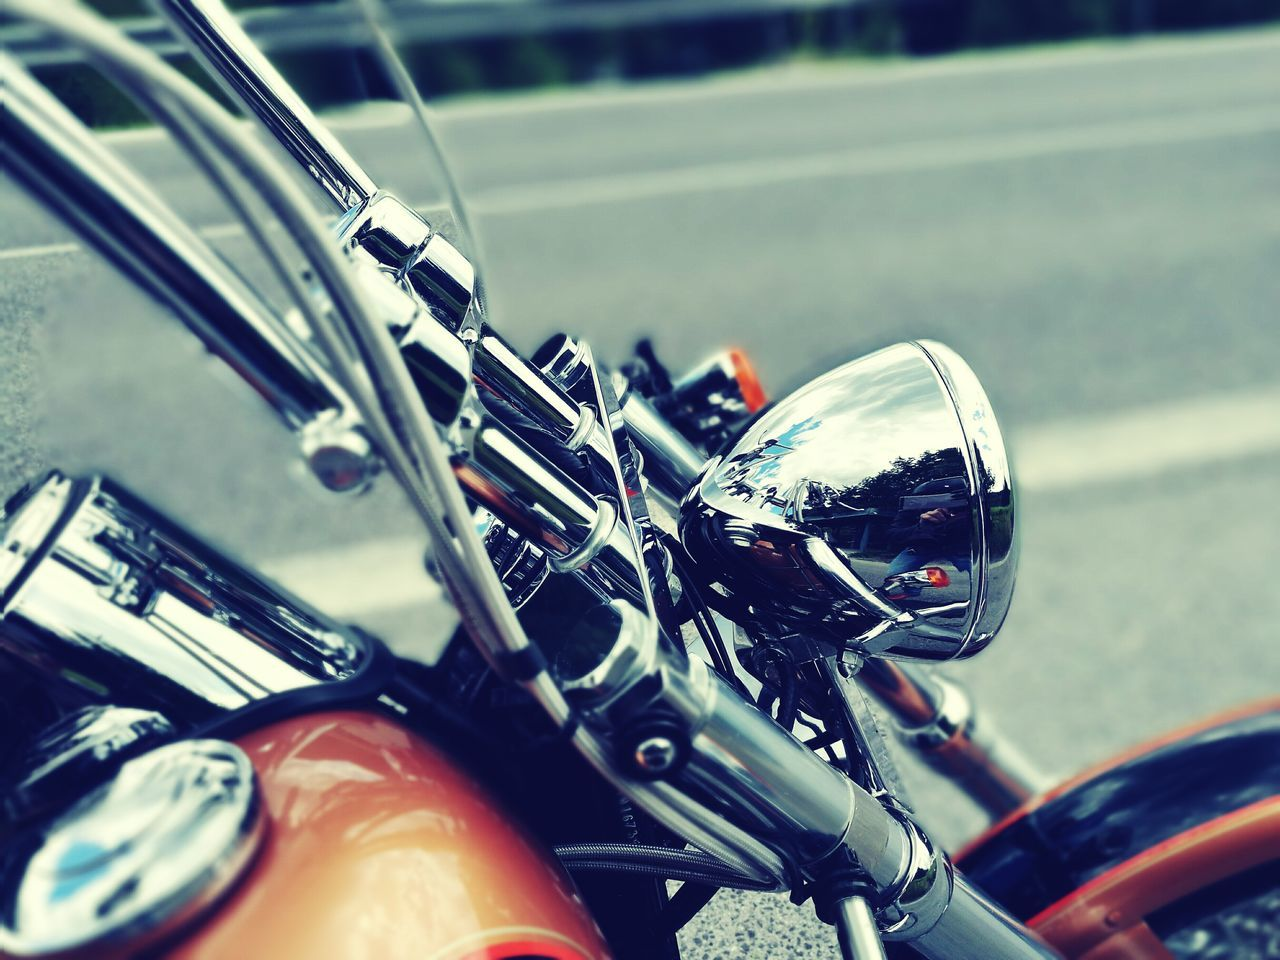 mode of transport, transportation, land vehicle, motorcycle, handlebar, close-up, bicycle, stationary, road, street, cycling, outdoors, focus on foreground, speedometer, speed, biker, day, riding, one person